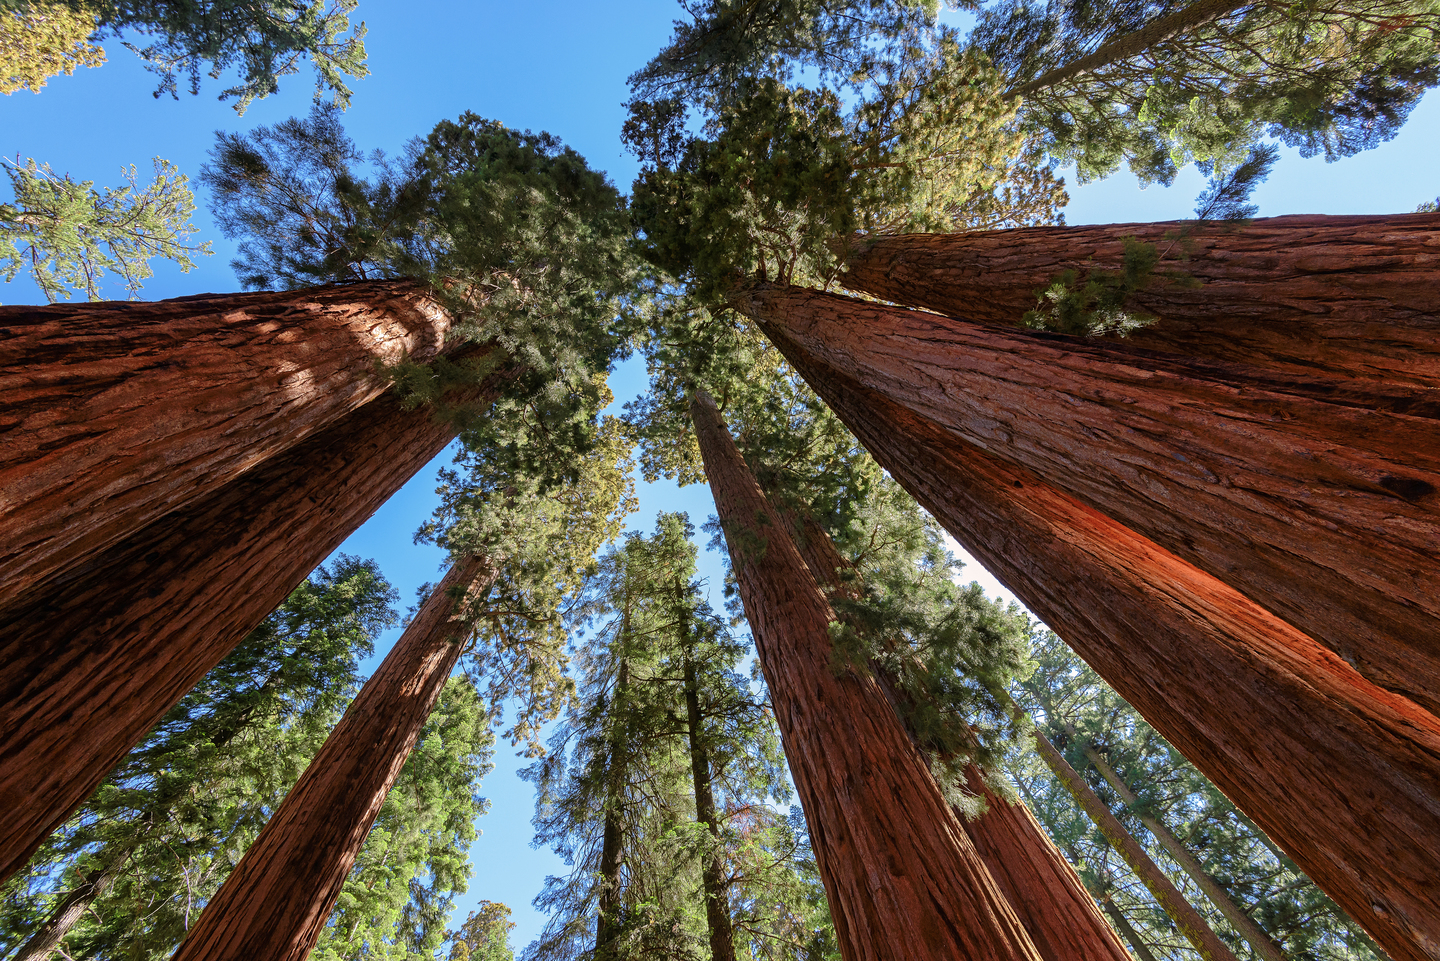 Looking up at giant sequoia trees